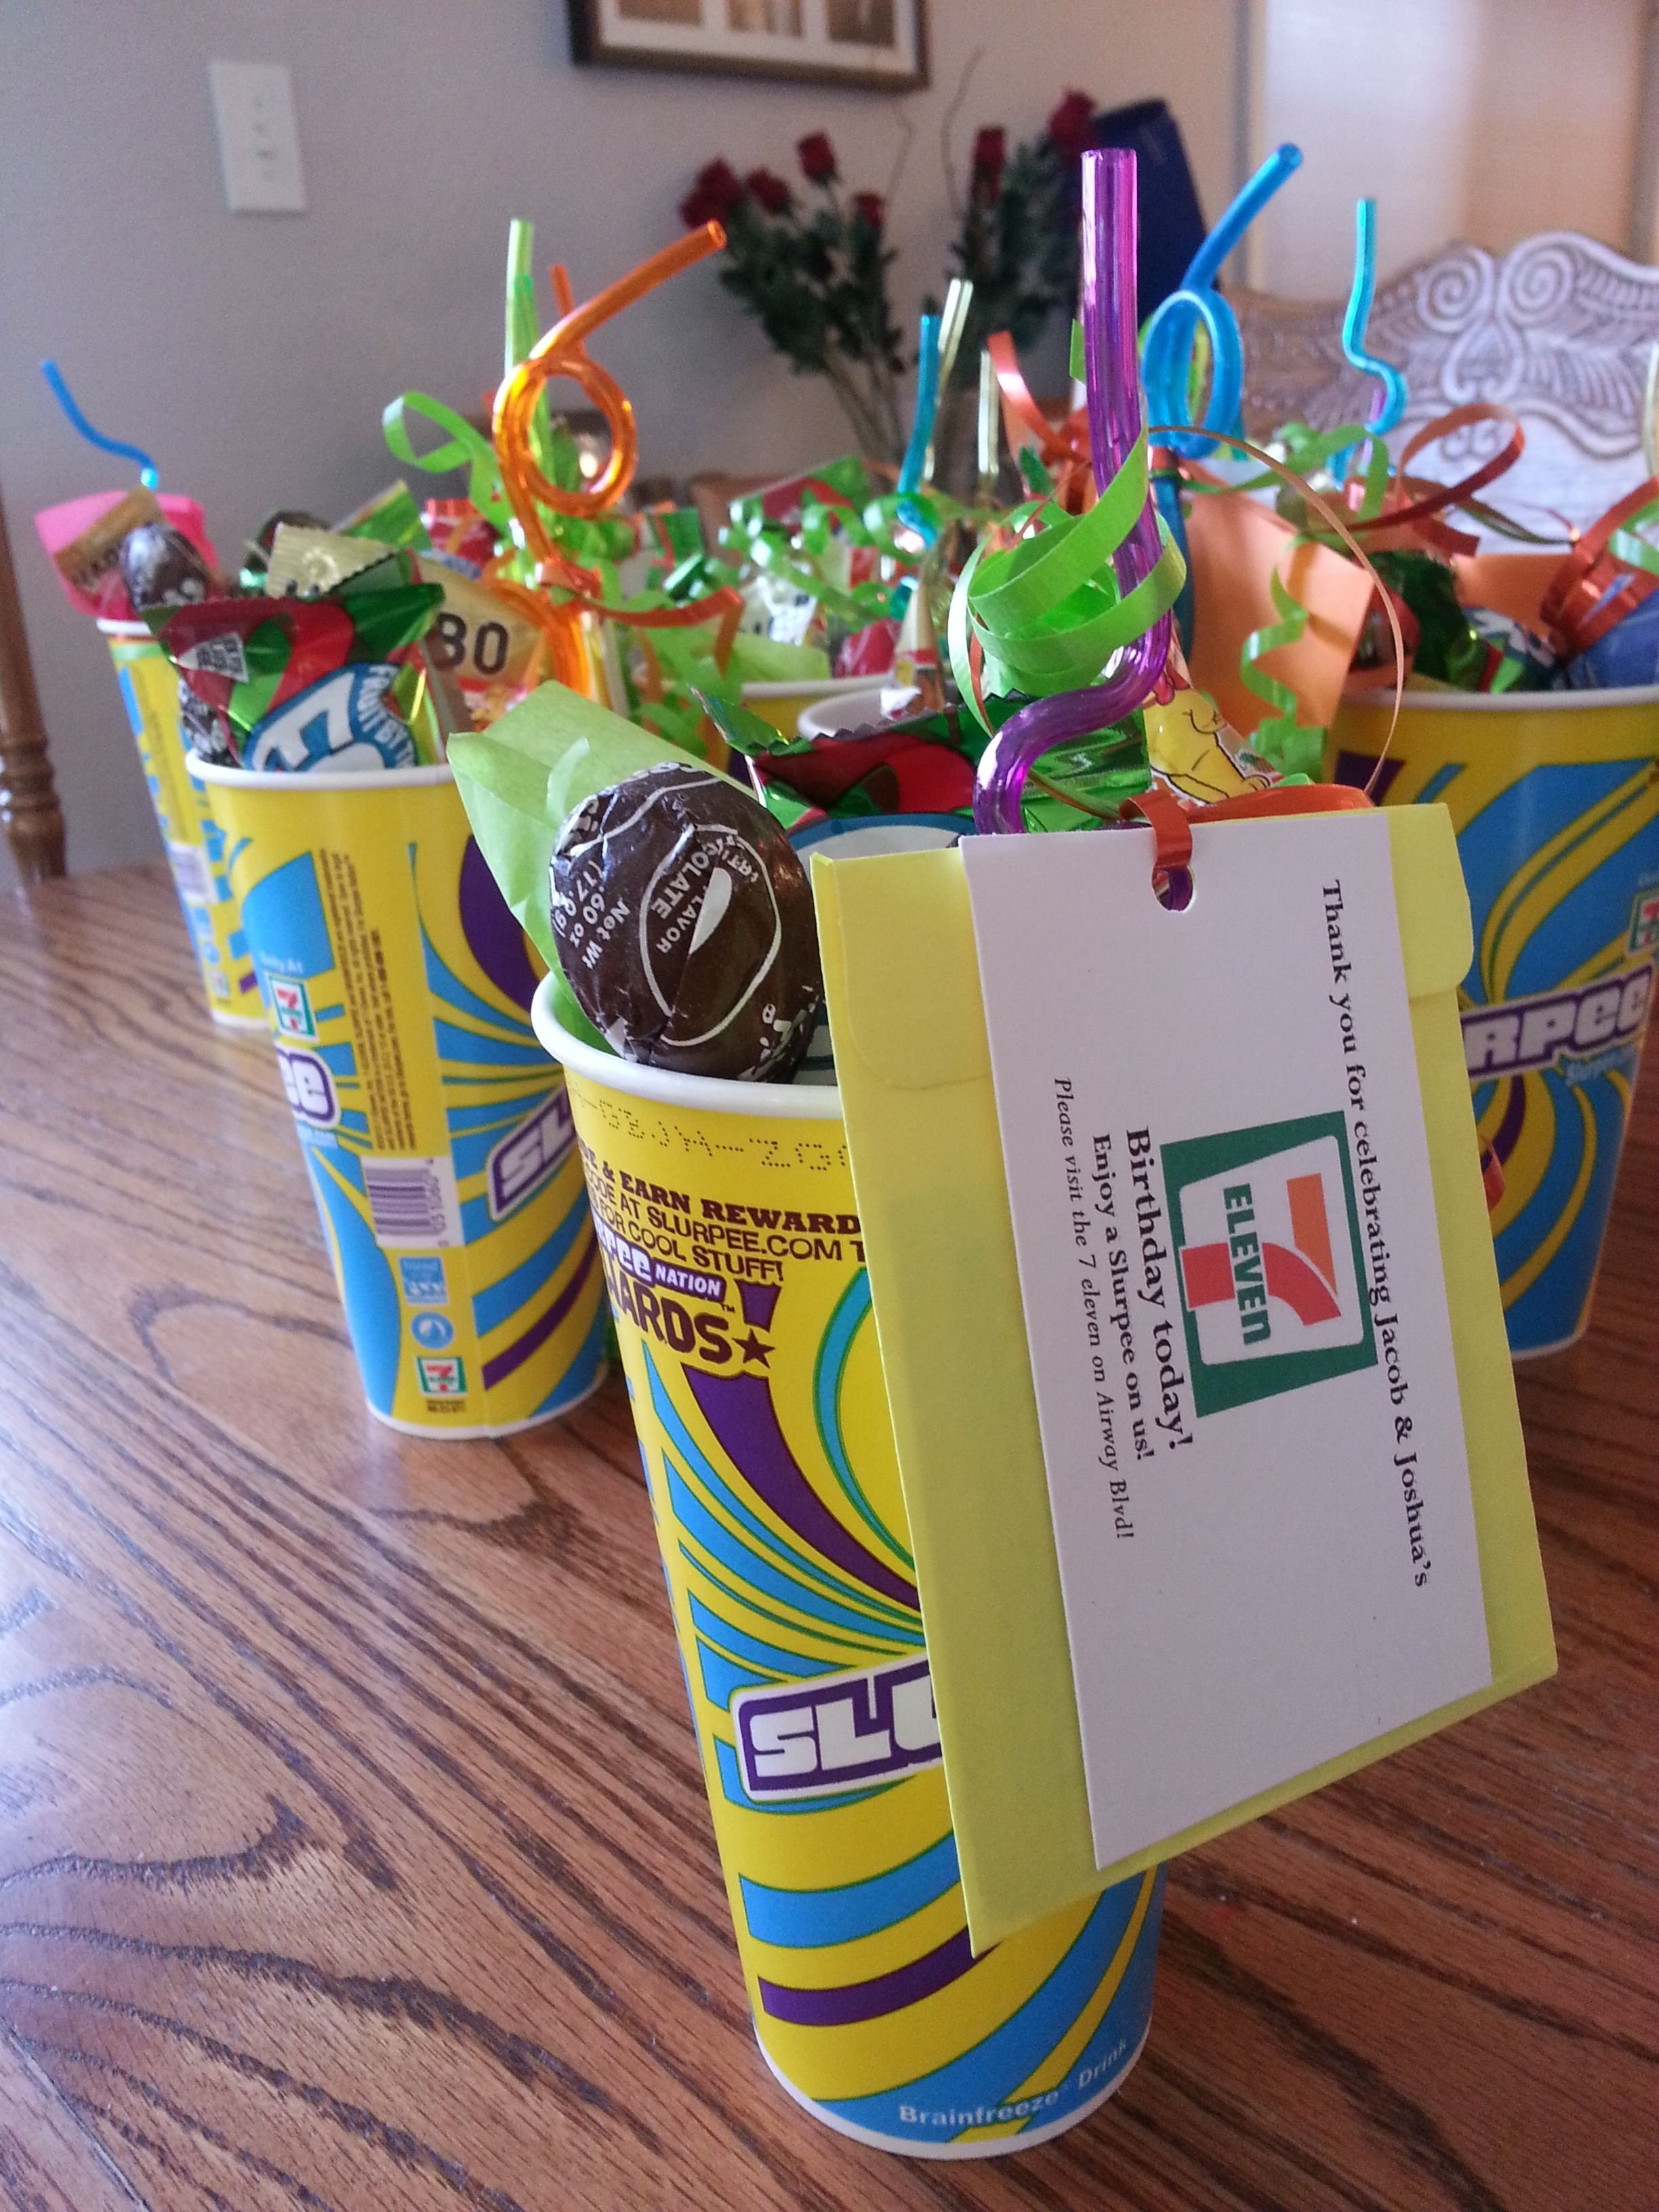 10 Great 14 Year Old Birthday Party Ideas my boys turned 7 and 11 years old and their birthdays are very close 18 2021